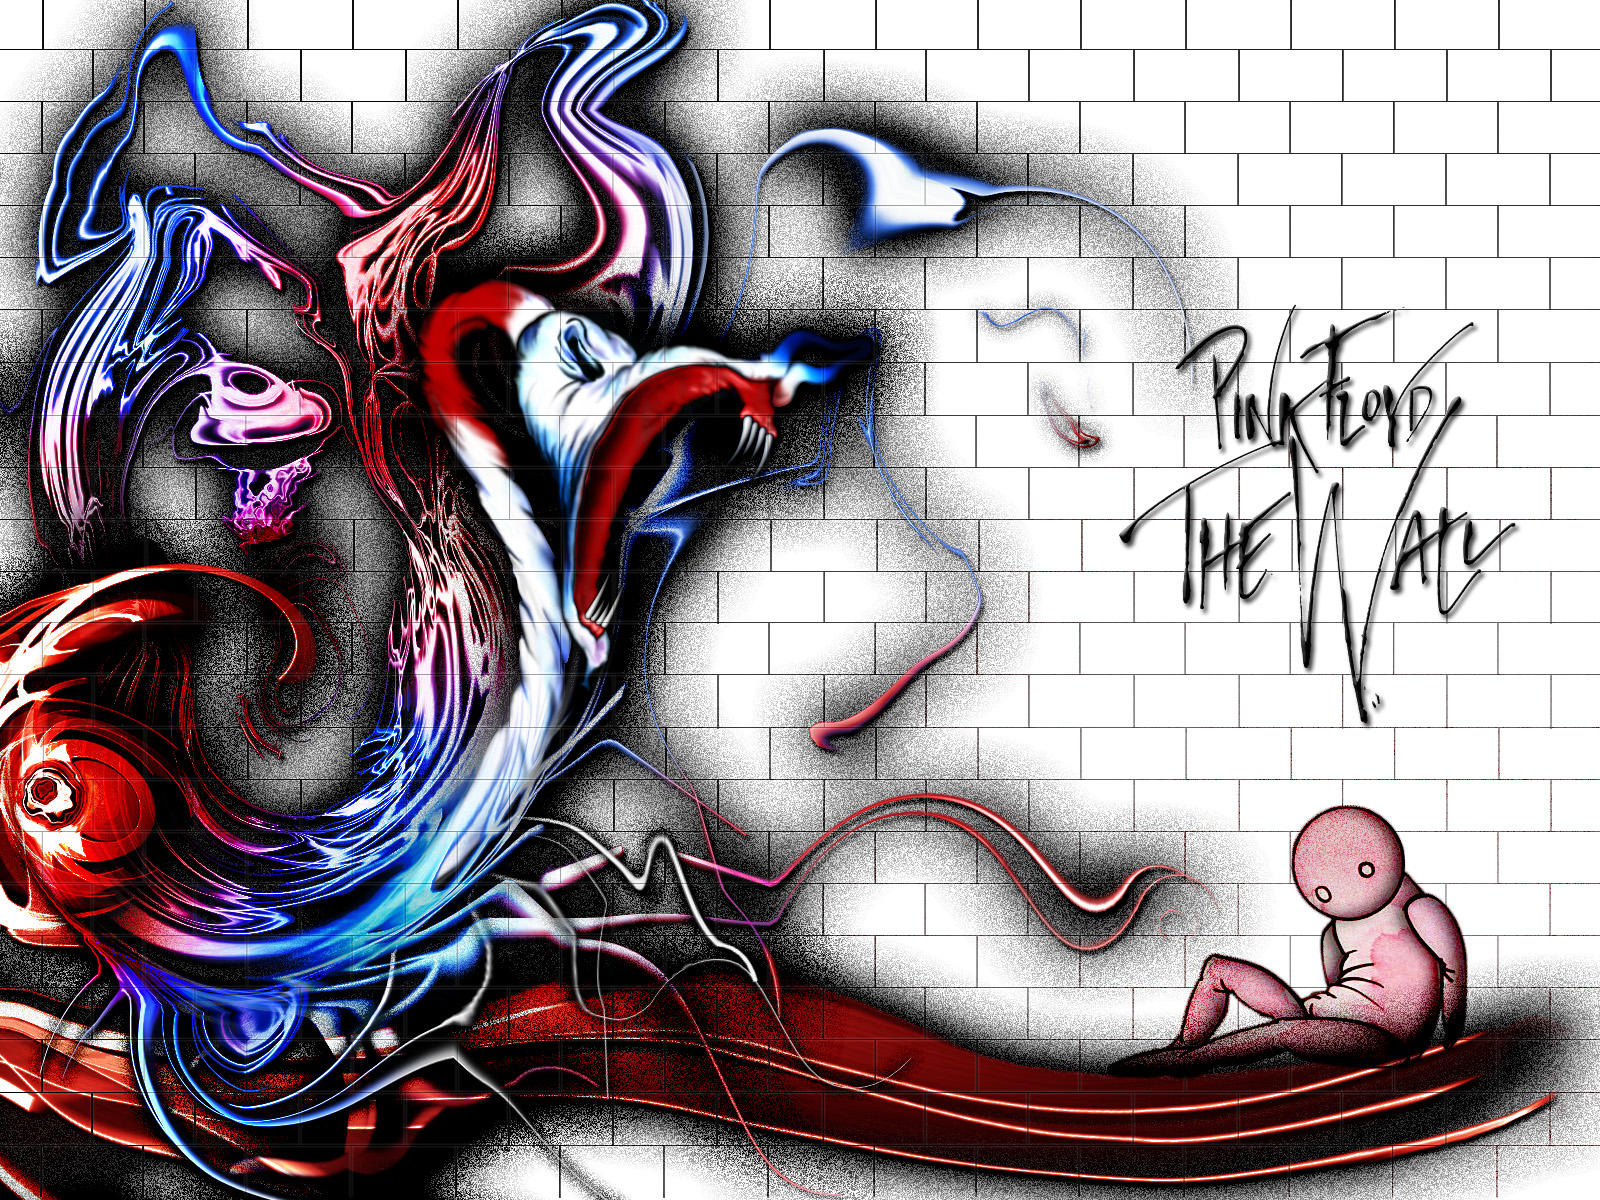 Pink floyd the wall flower animation 95833 loadtve pink floyd the wall flower animation mightylinksfo